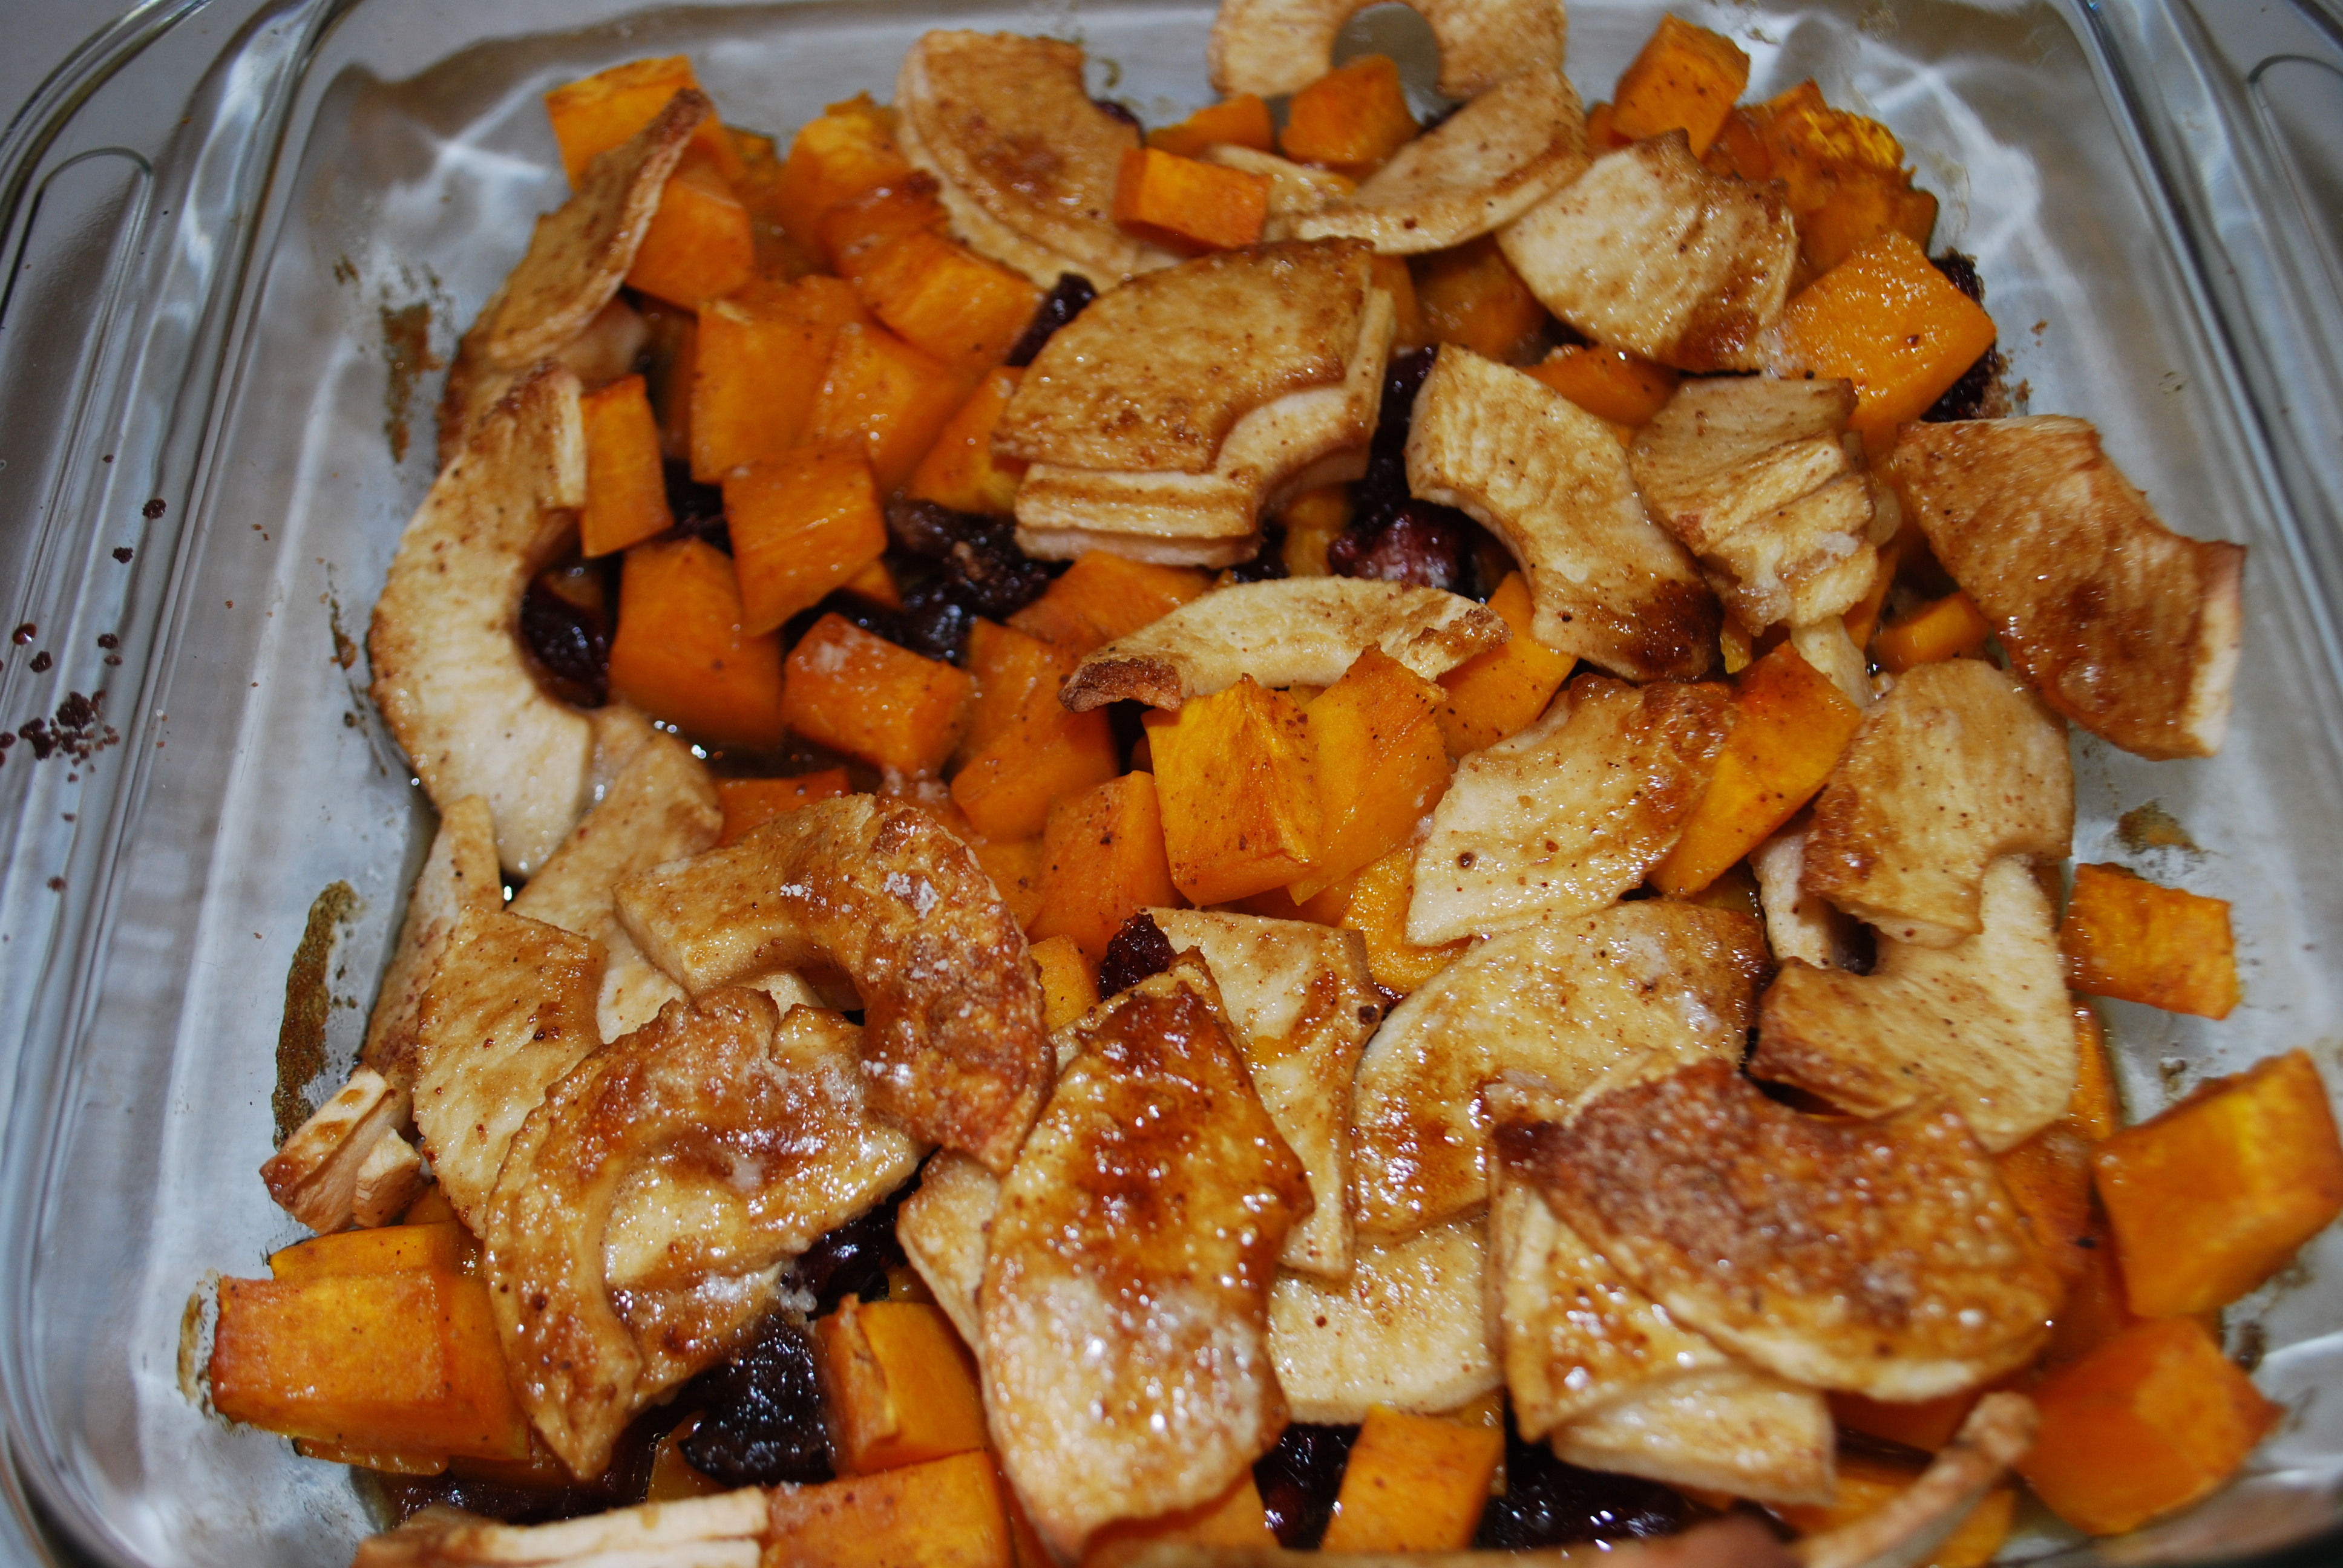 ... Photo a Day Challenge (Recipe: Butternut Squash Apple Cranberry Bake